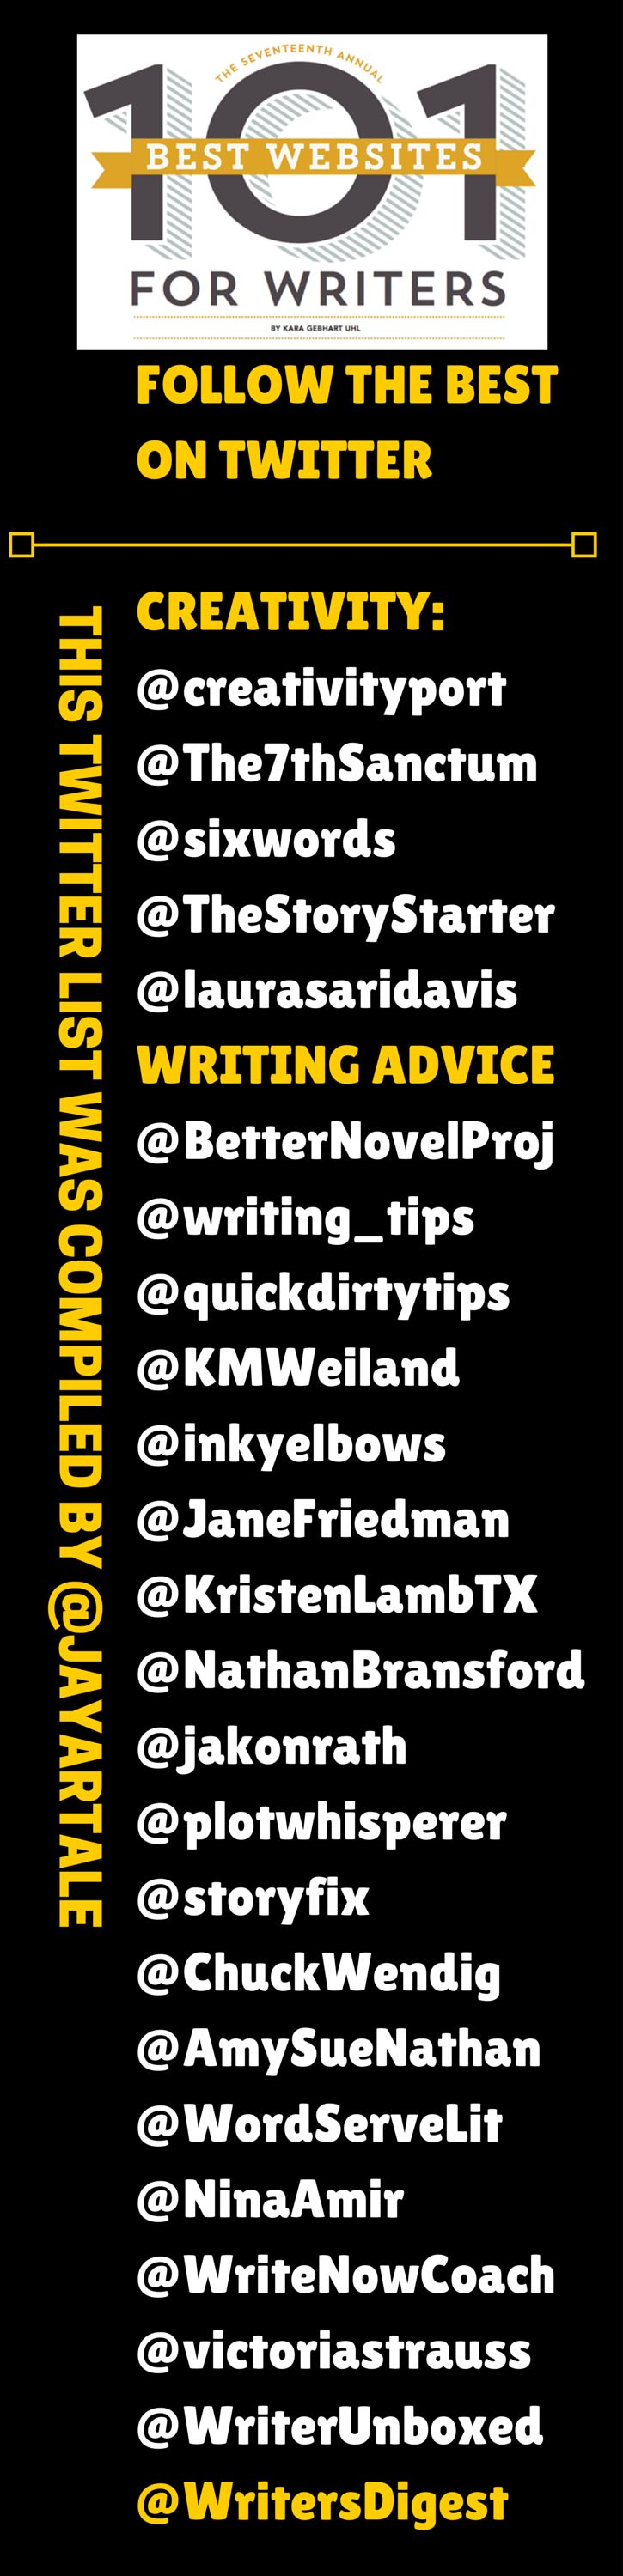 2015 Writer's Digest 101 Best Websites for Writers. Here's the Twitter handles for the writer's websites in the creativity and writing advice sections. You can follow these professionals in my Twitter List: https://twitter.com/jayartale/lists/101-best-writers-websites